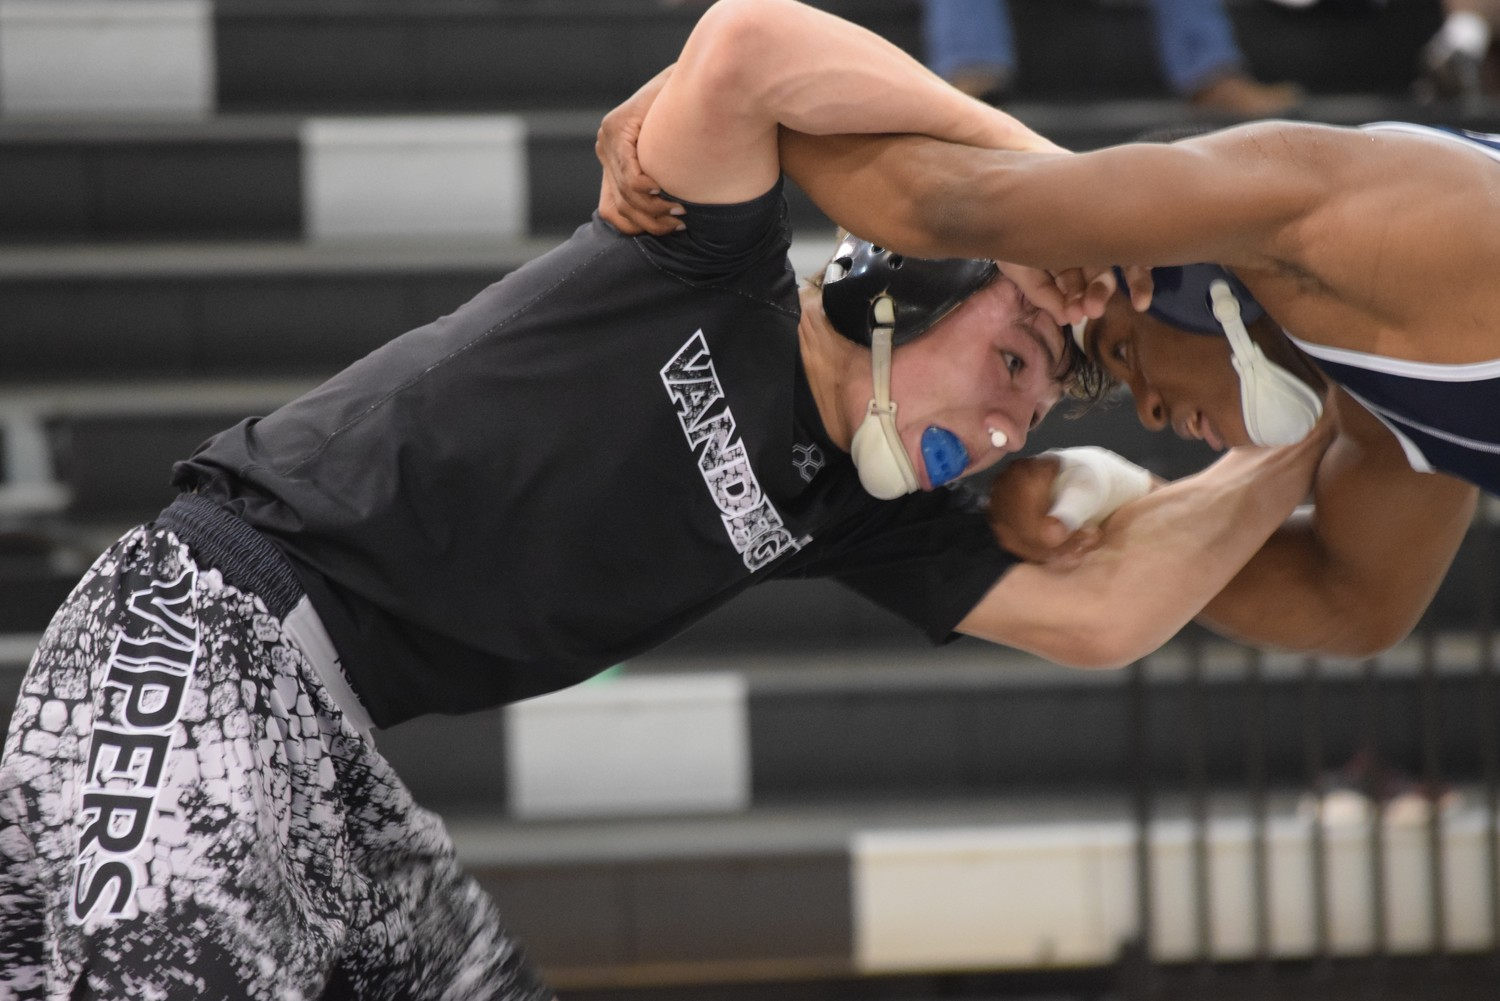 Vandegrift sophomore Luke Sloan is ranked No. 7 in the state in the 126-pound weight class this season according to wrestlingtexas.com.